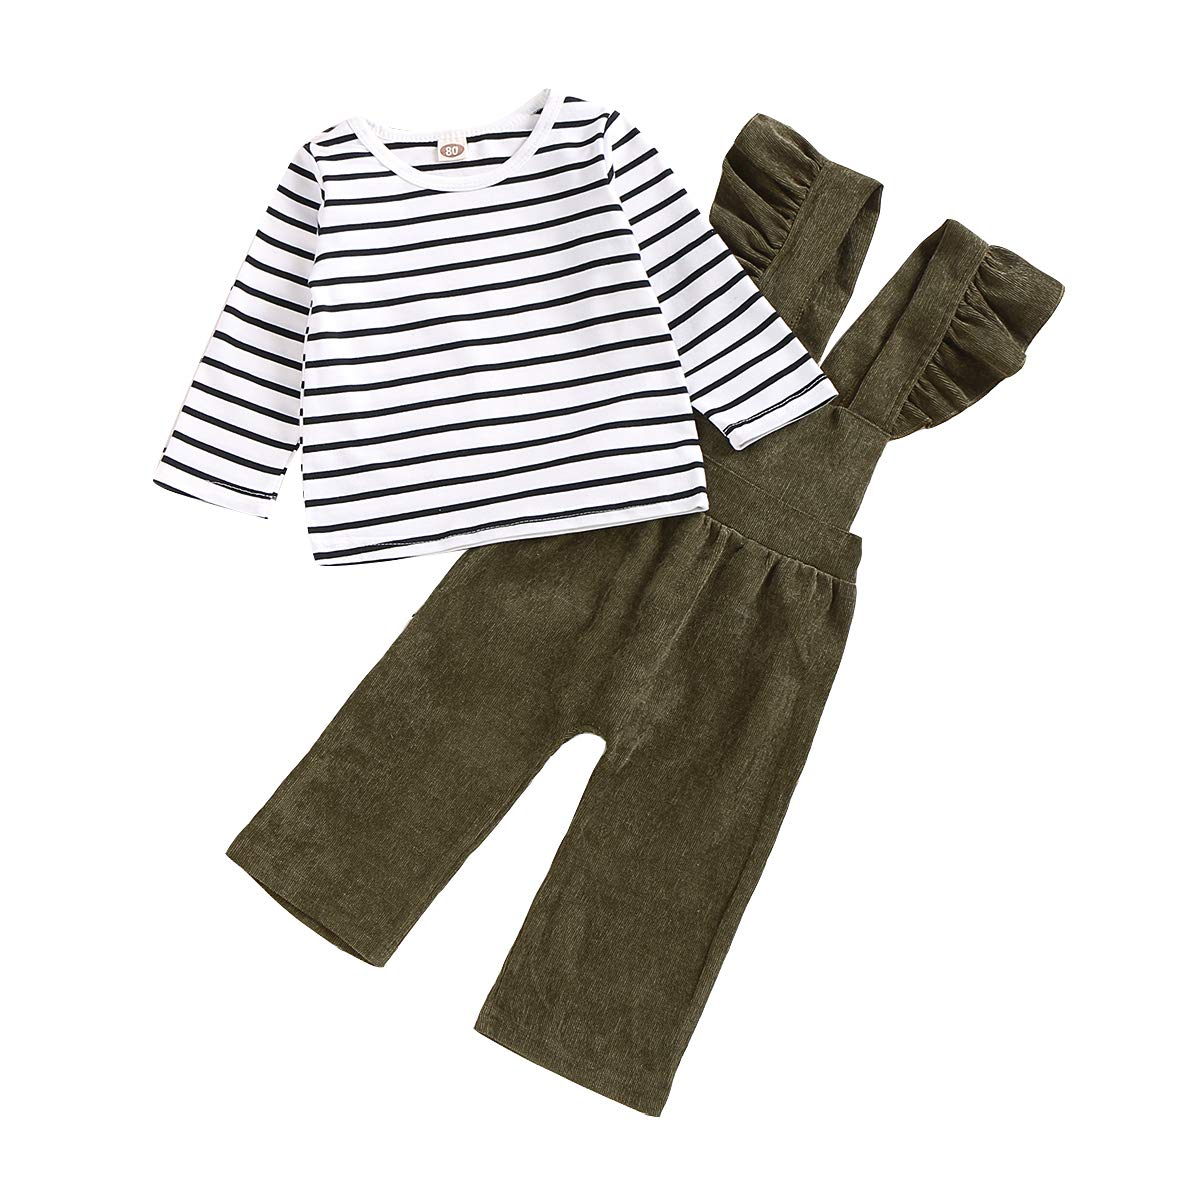 Seyouag Toddler Baby Girl Pants Sets Long Sleeve Stripe Top + Strap Overalls Corduroy Jumpsuit Fall Outfits Winter Clothes